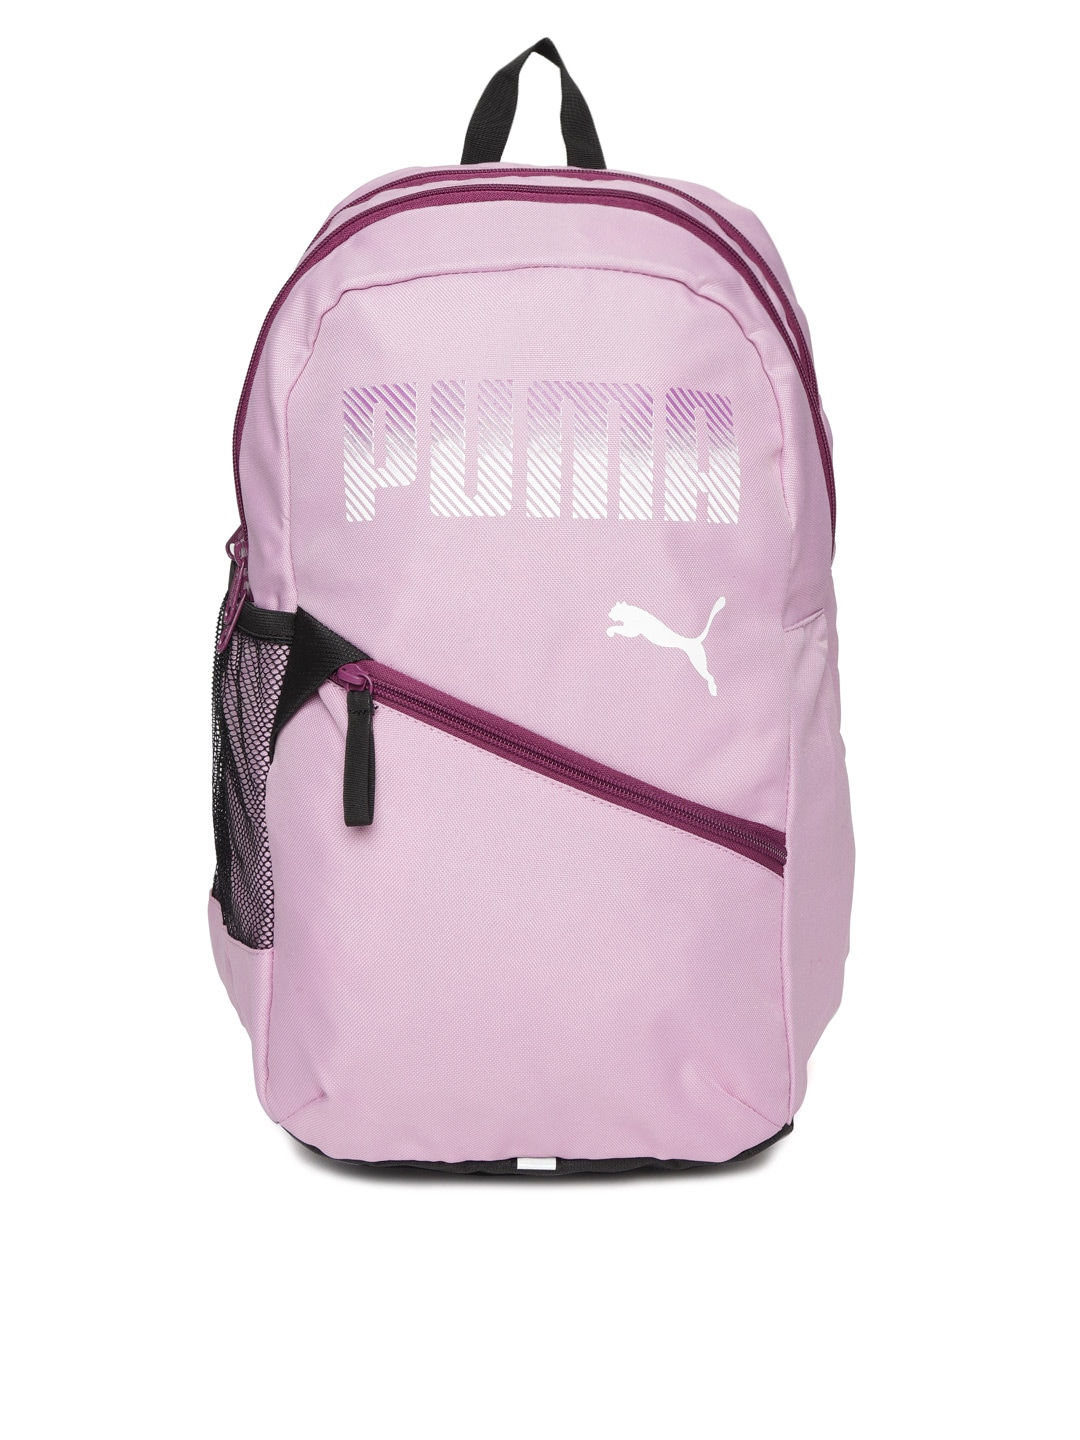 Puma Backpacks - Buy Puma Backpack For Men   Women Online  4c799362be6a3